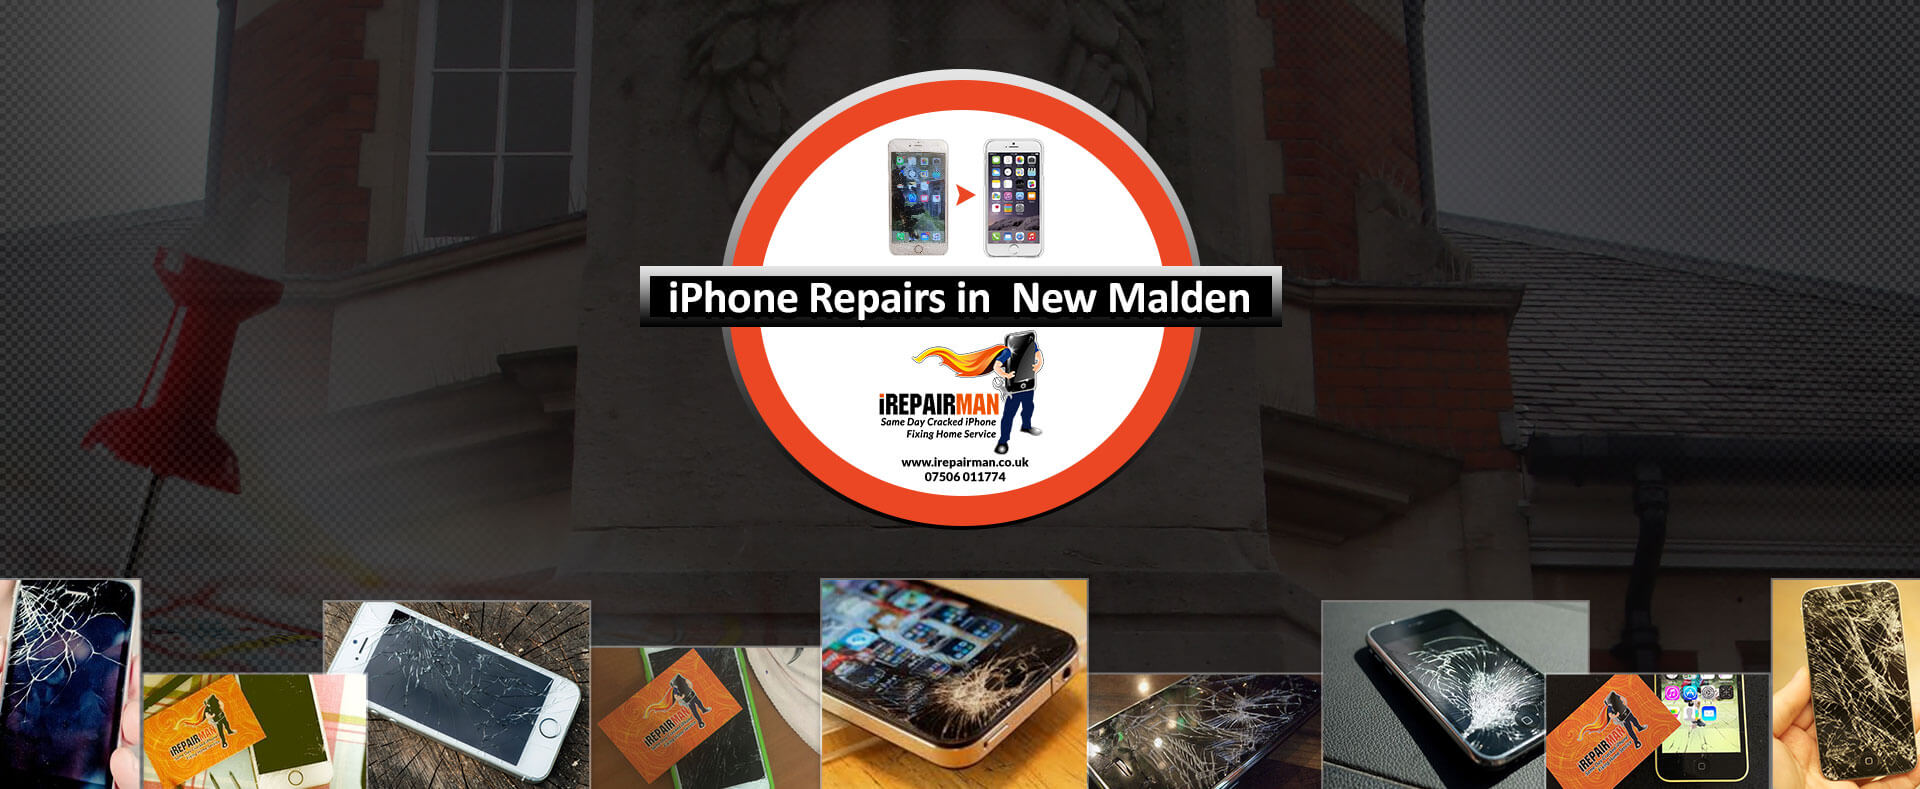 iPhone Repairs in New Malden